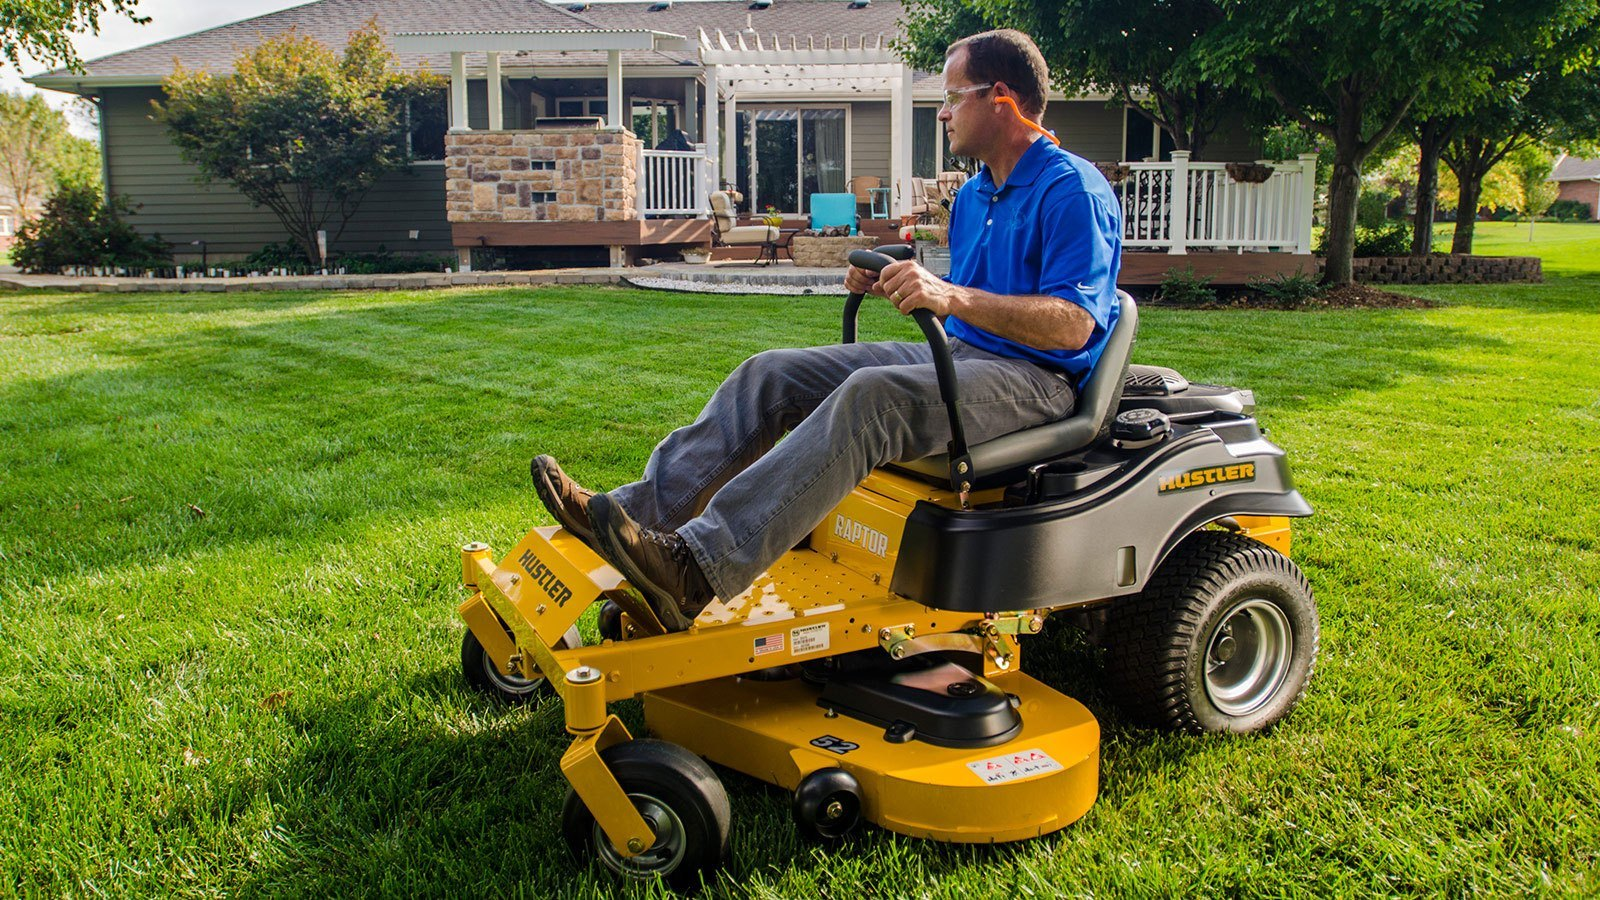 Hustler lawn mower dealer